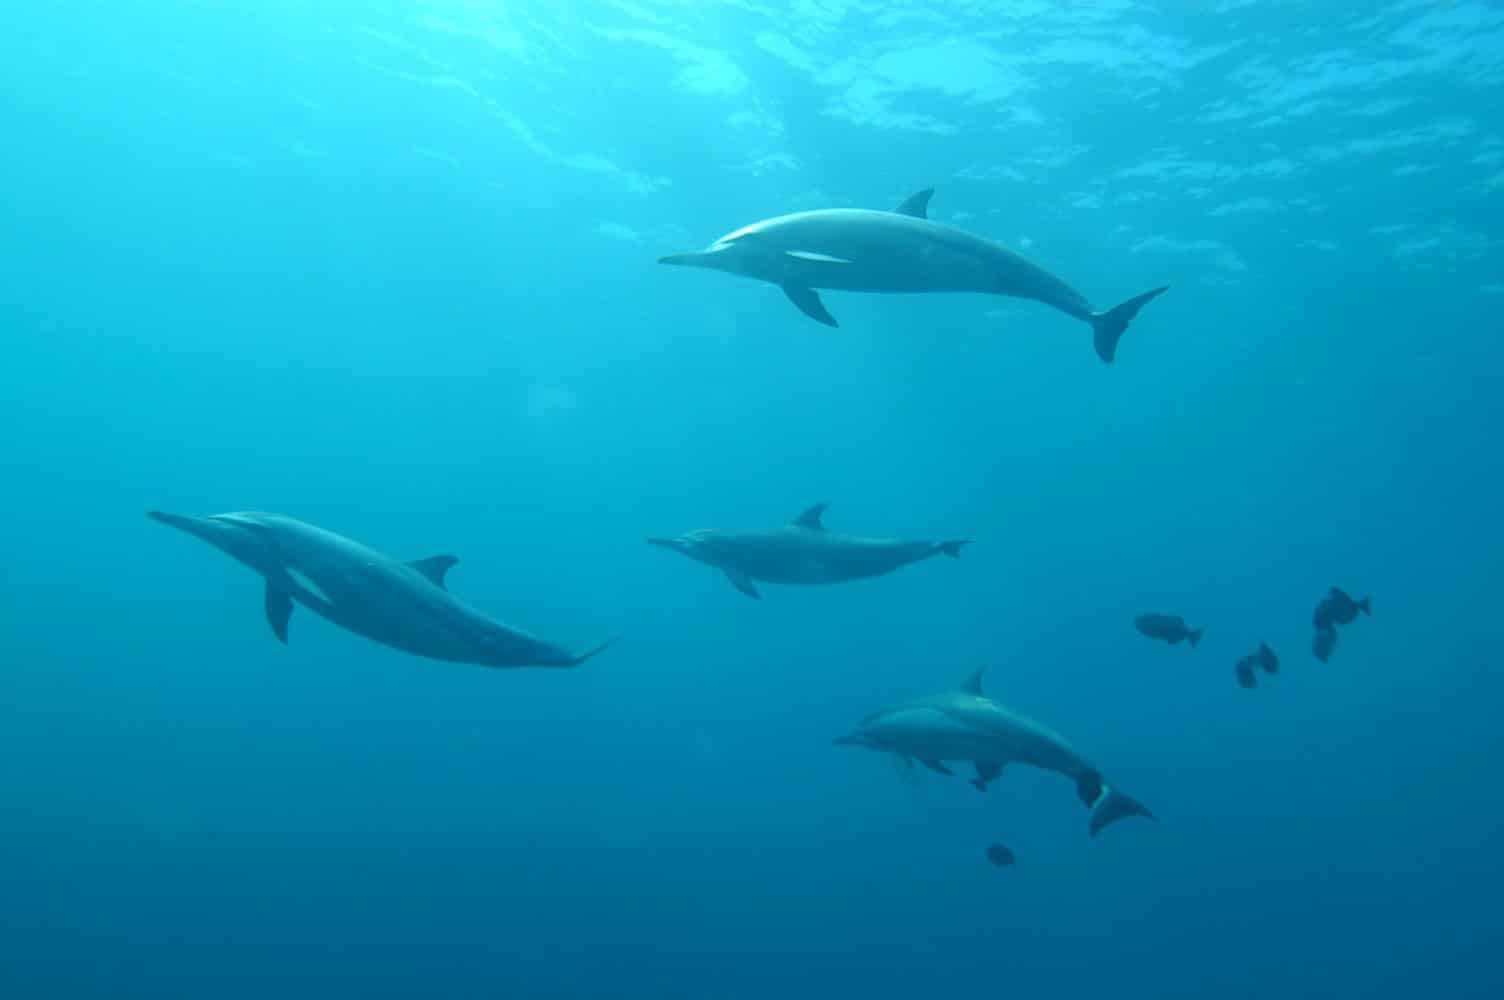 Male dolphins coordinate just like humans